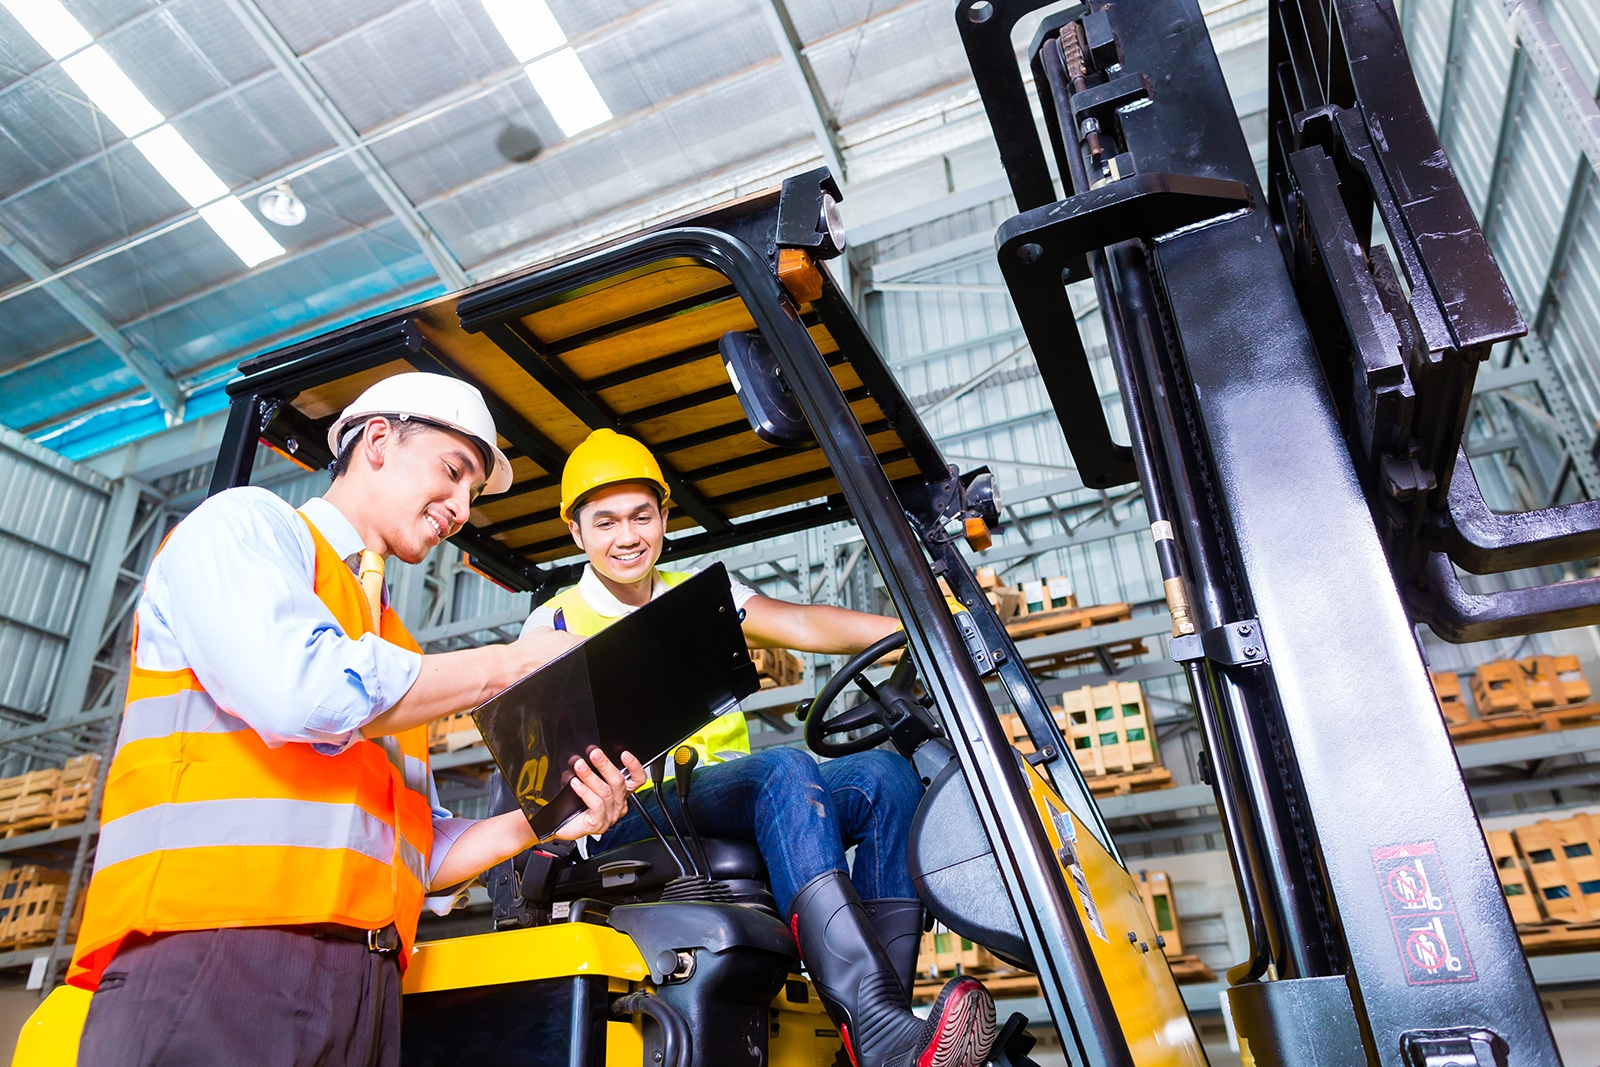 8 Safety Tips for Warehouse Ergonomics